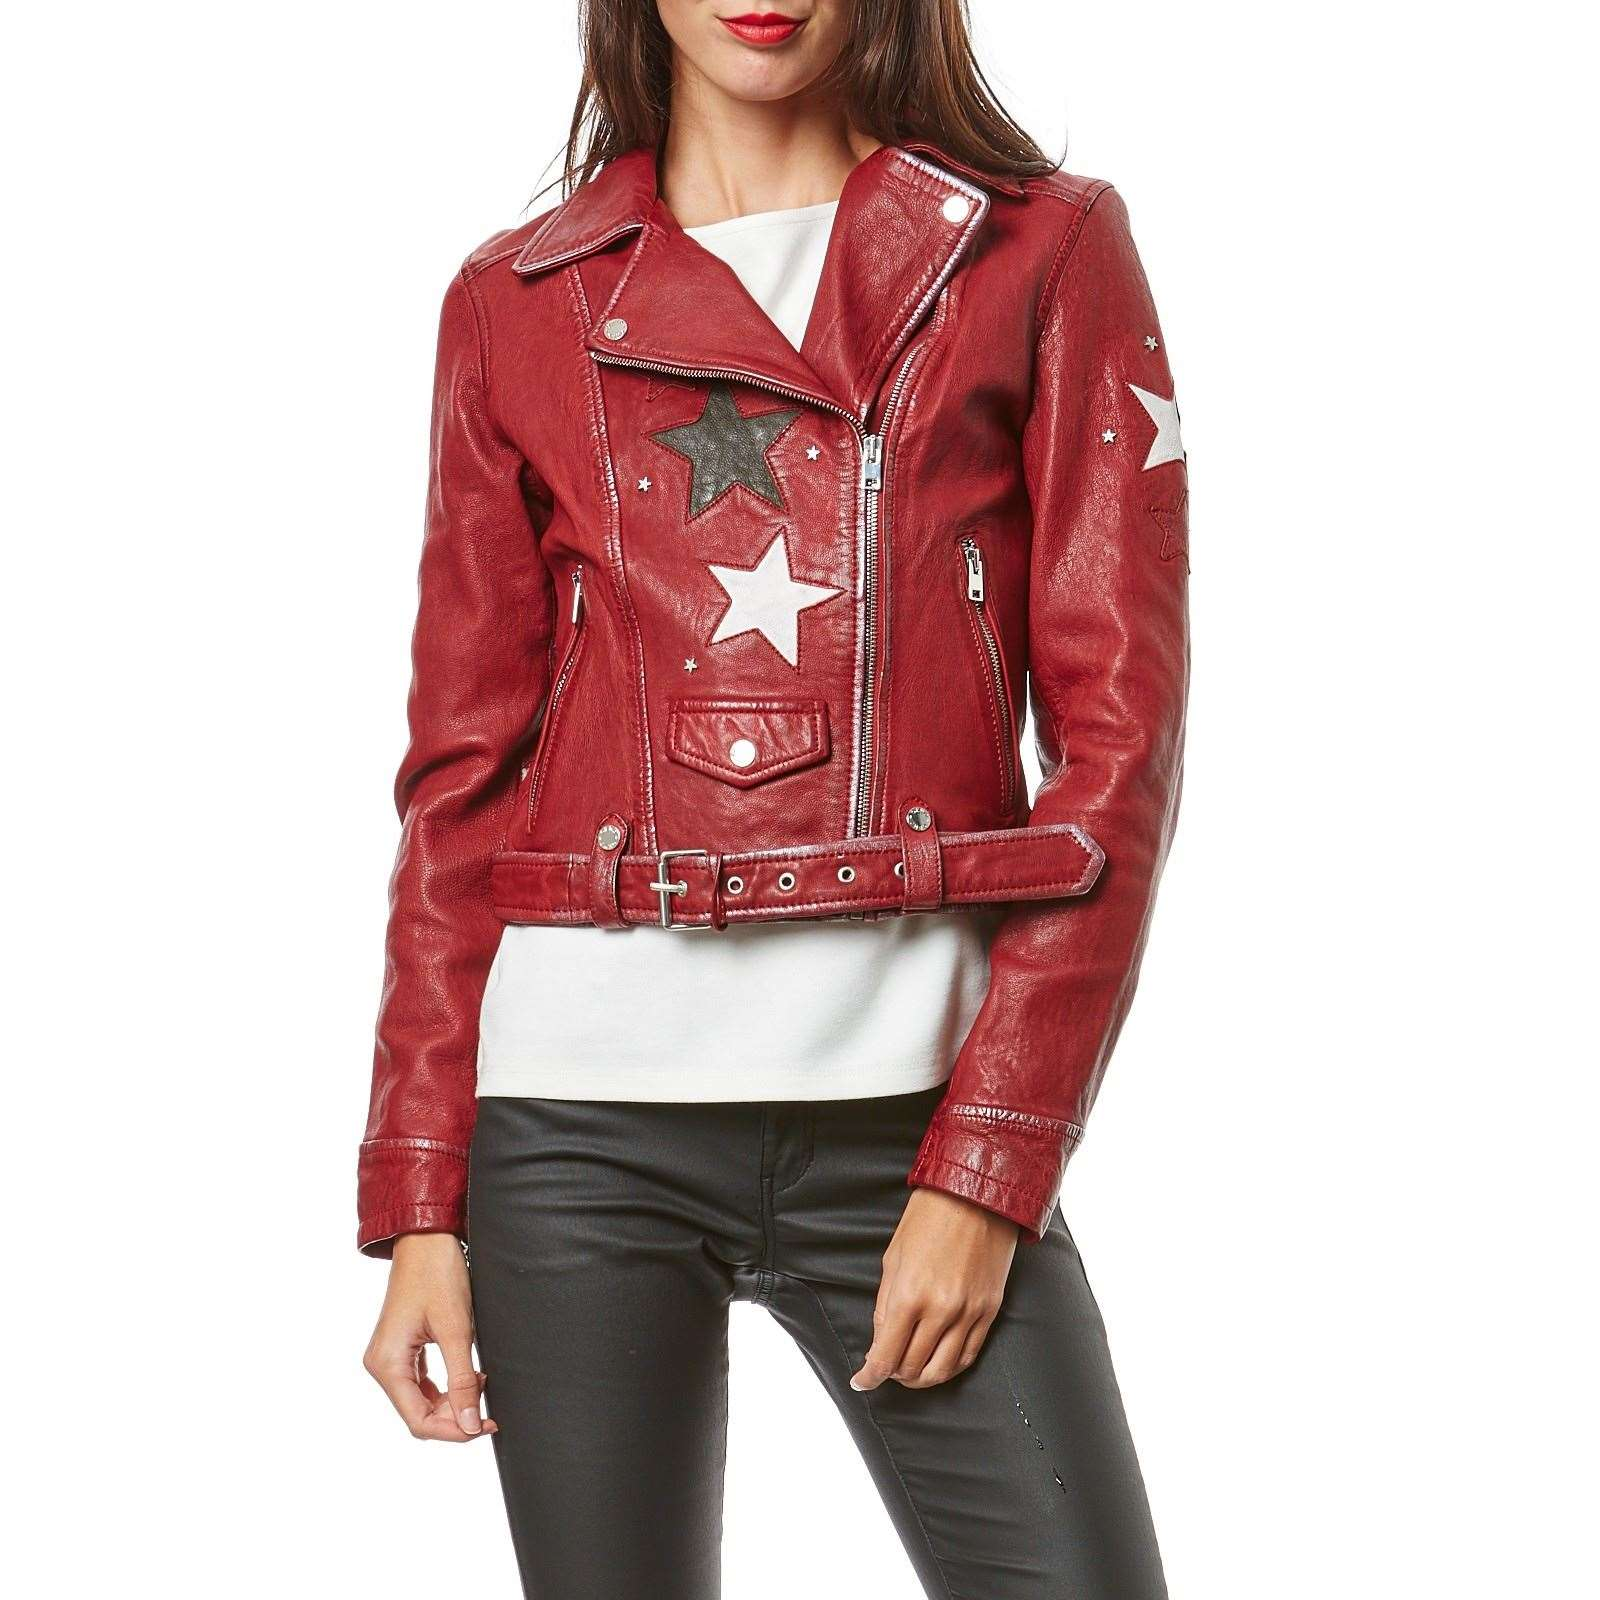 Oakwood Courtney - Veste biker en cuir de mouton - rouge   BrandAlley f326847c1b2a